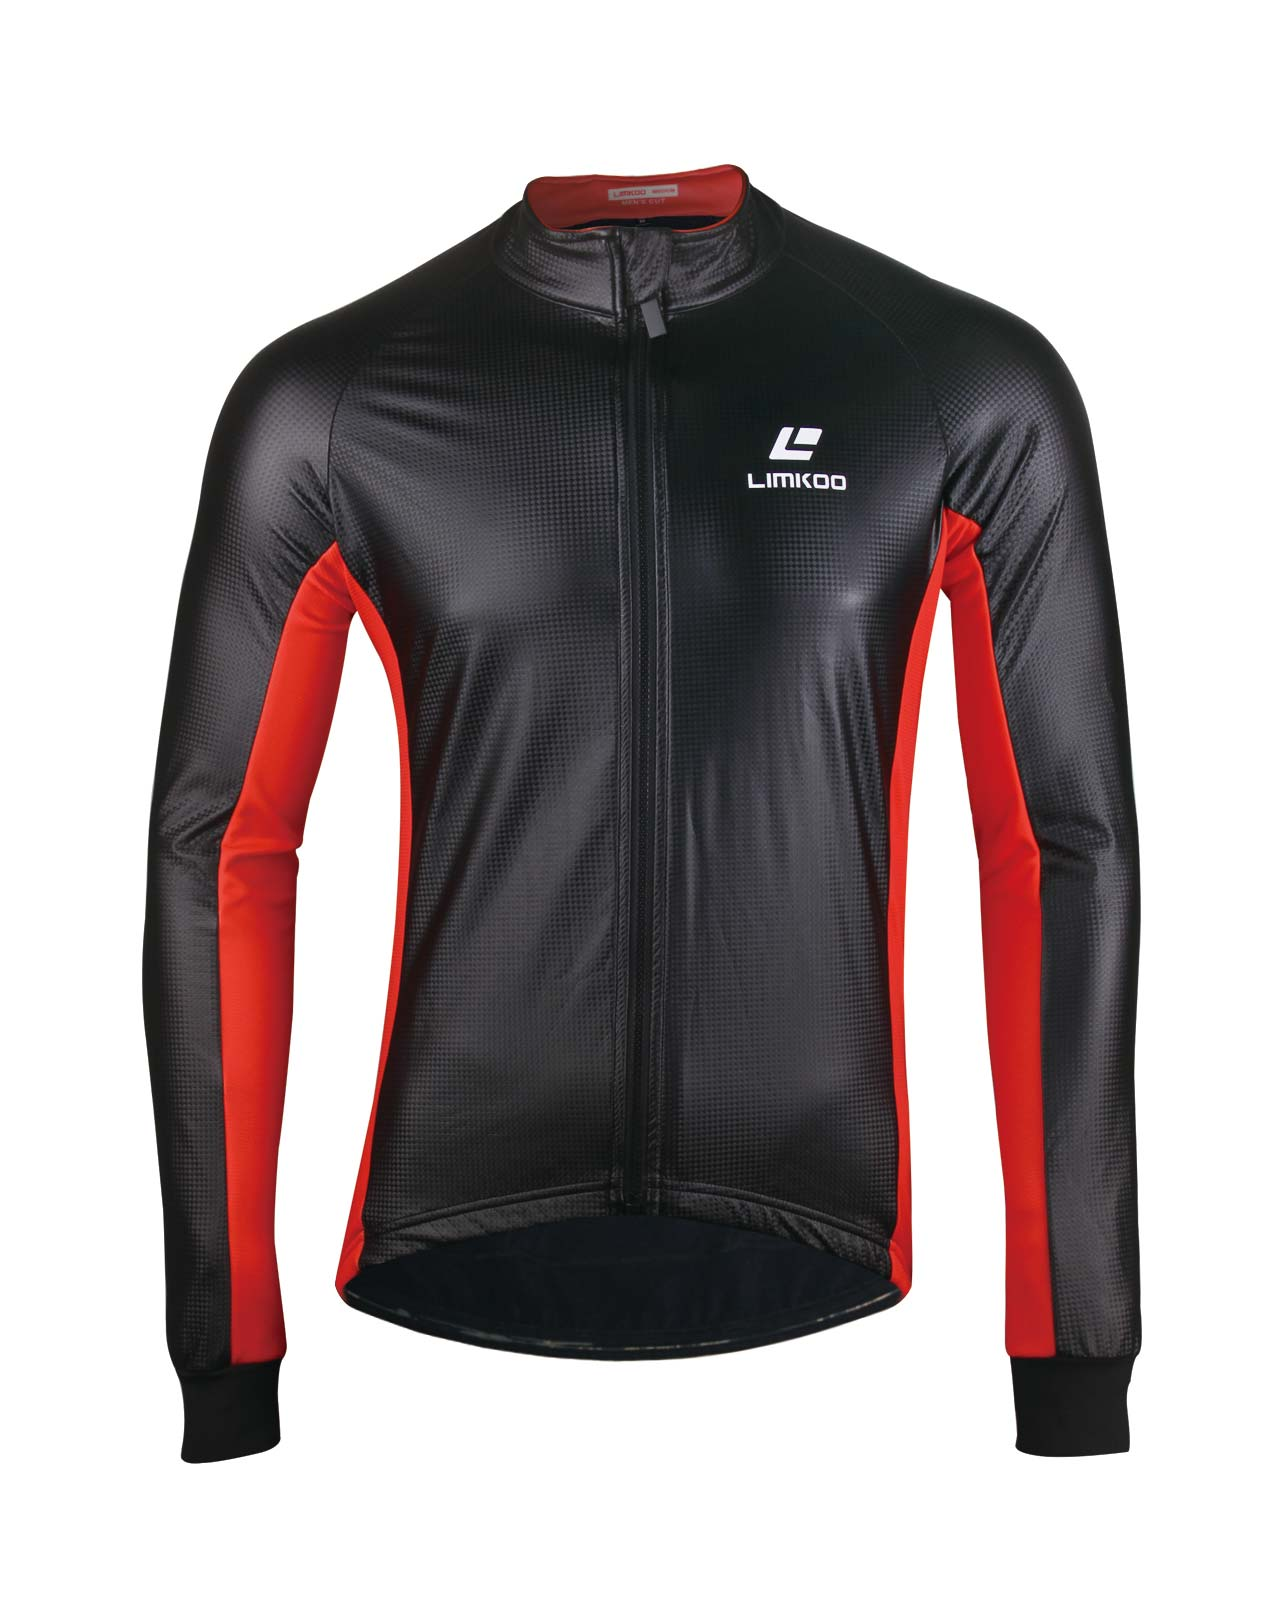 Italian Carbon Windproof & Warterproof LAMPO Cycling Jacket